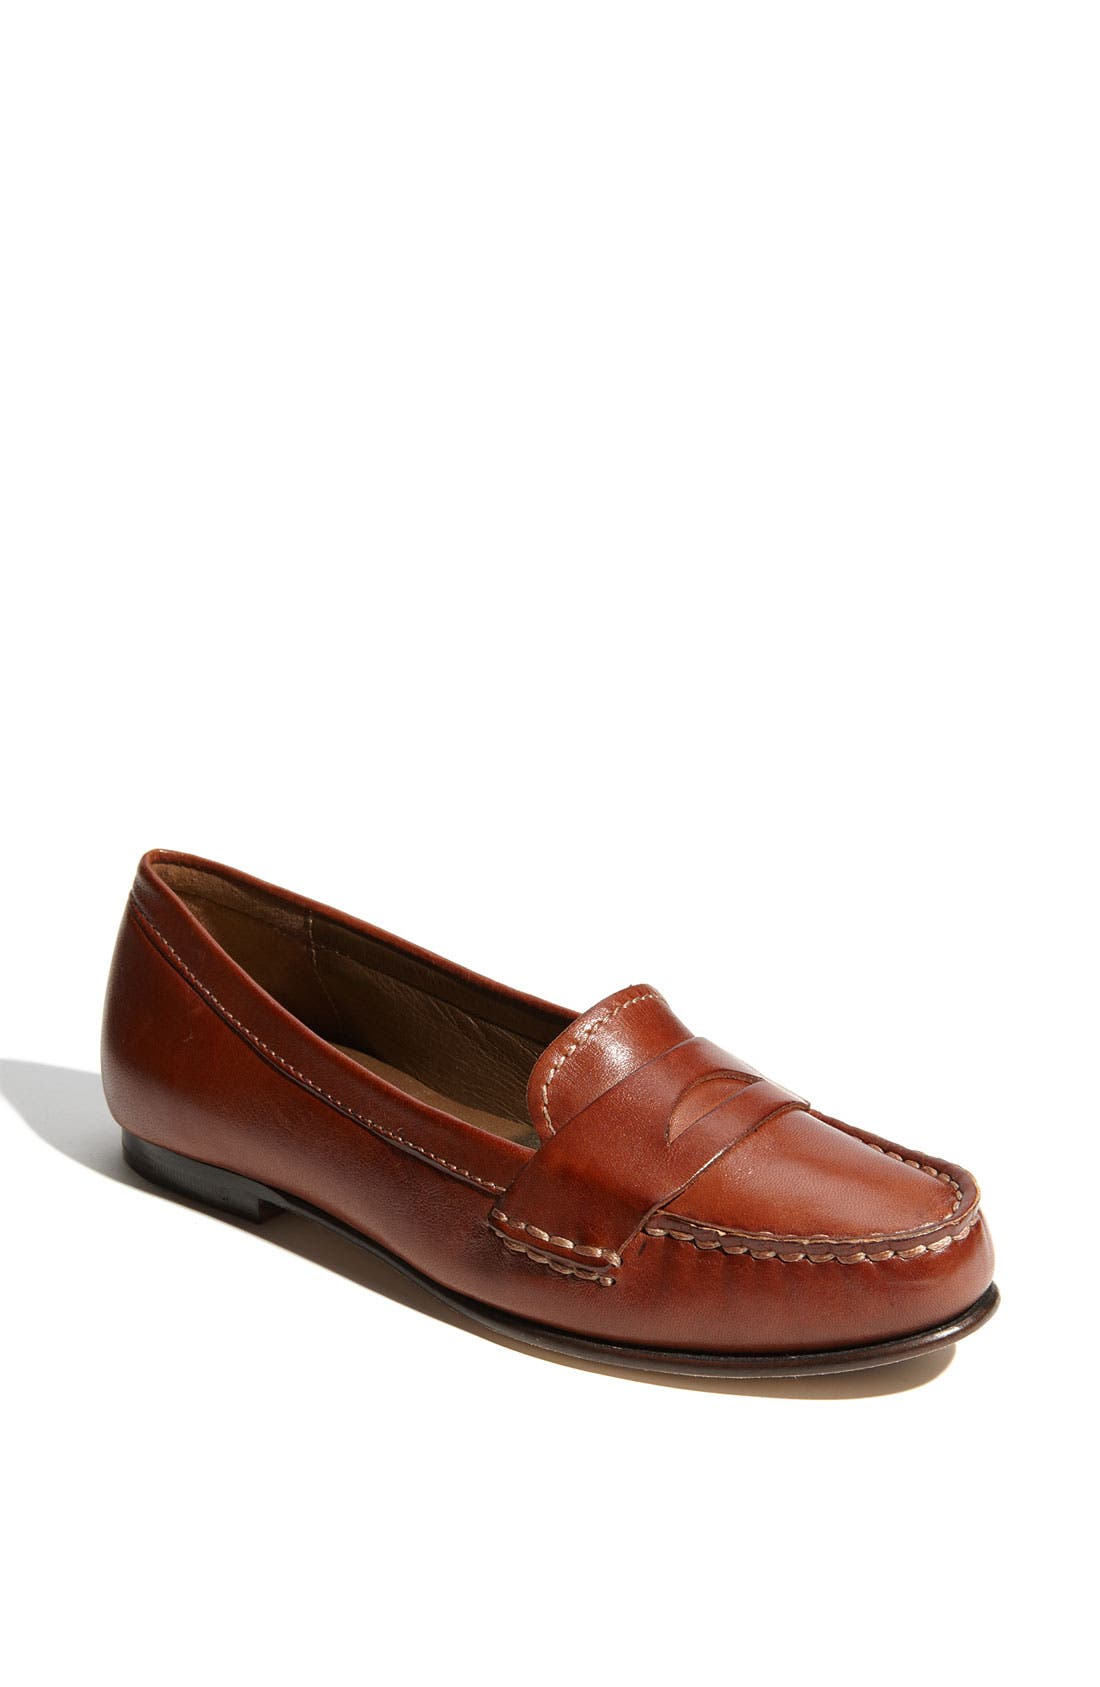 Alternate Image 1 Selected - Cole Haan 'Air Sloane' Leather Loafer